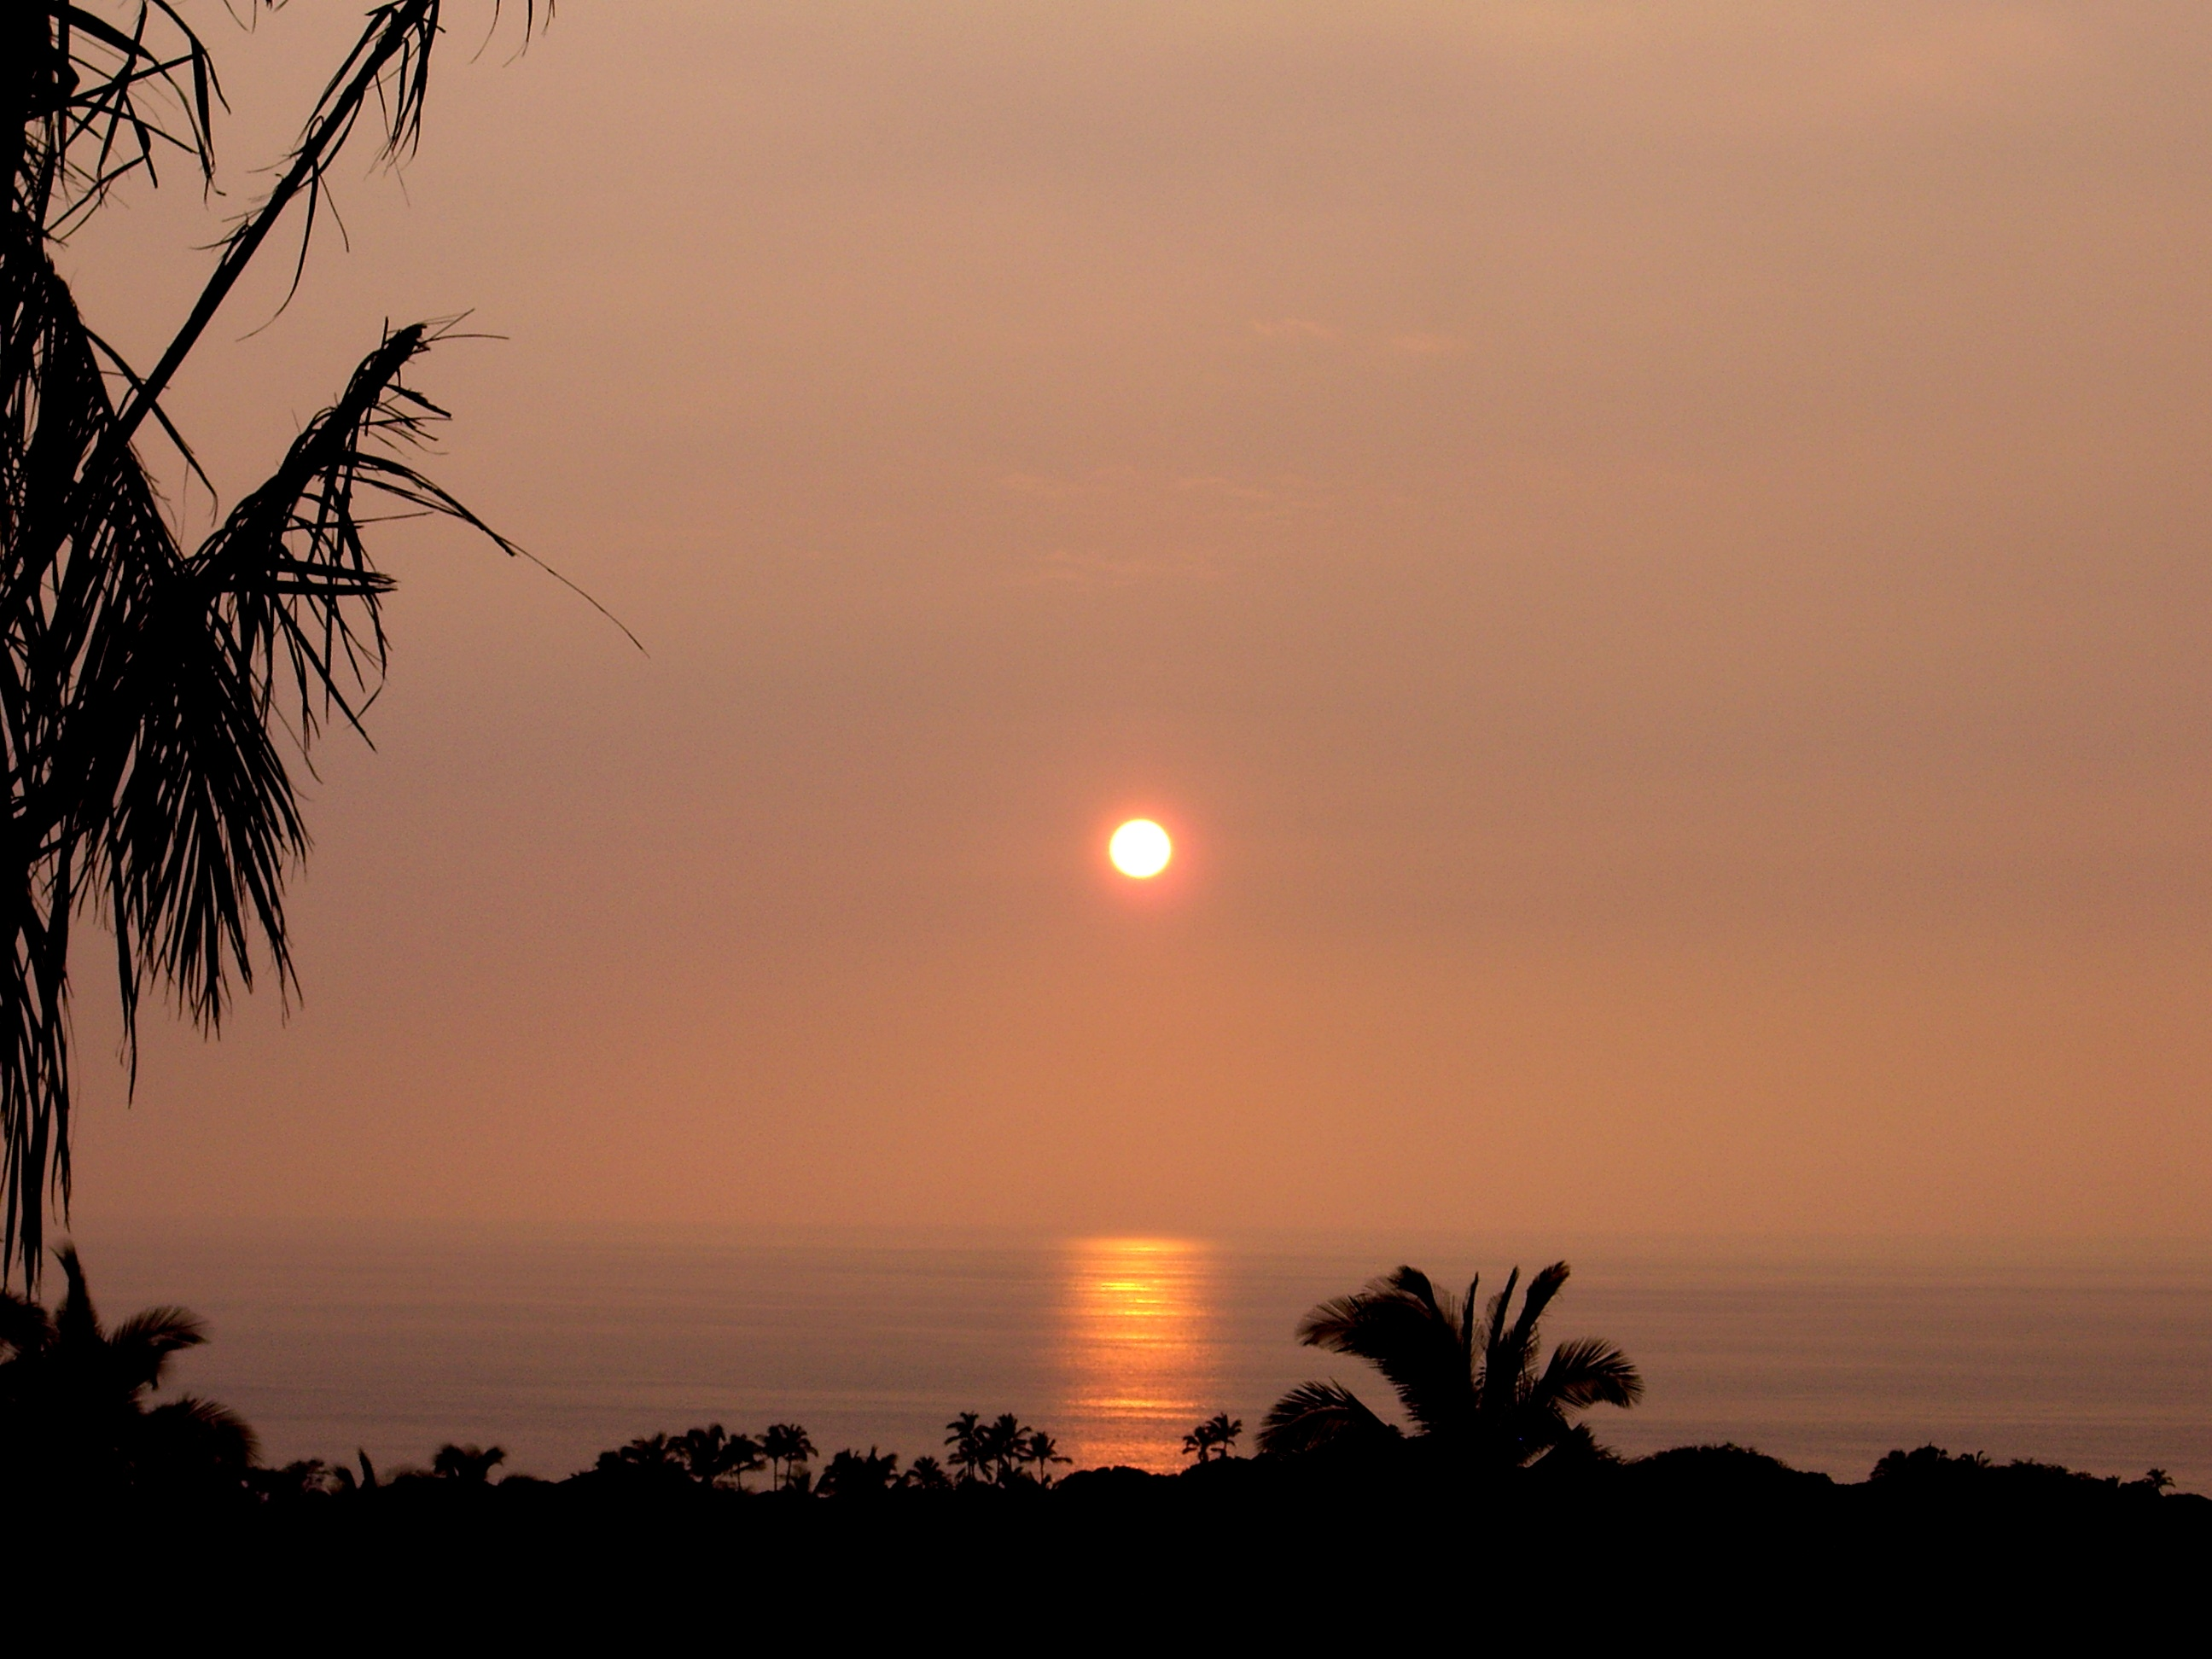 Kona sunset, Hawaii